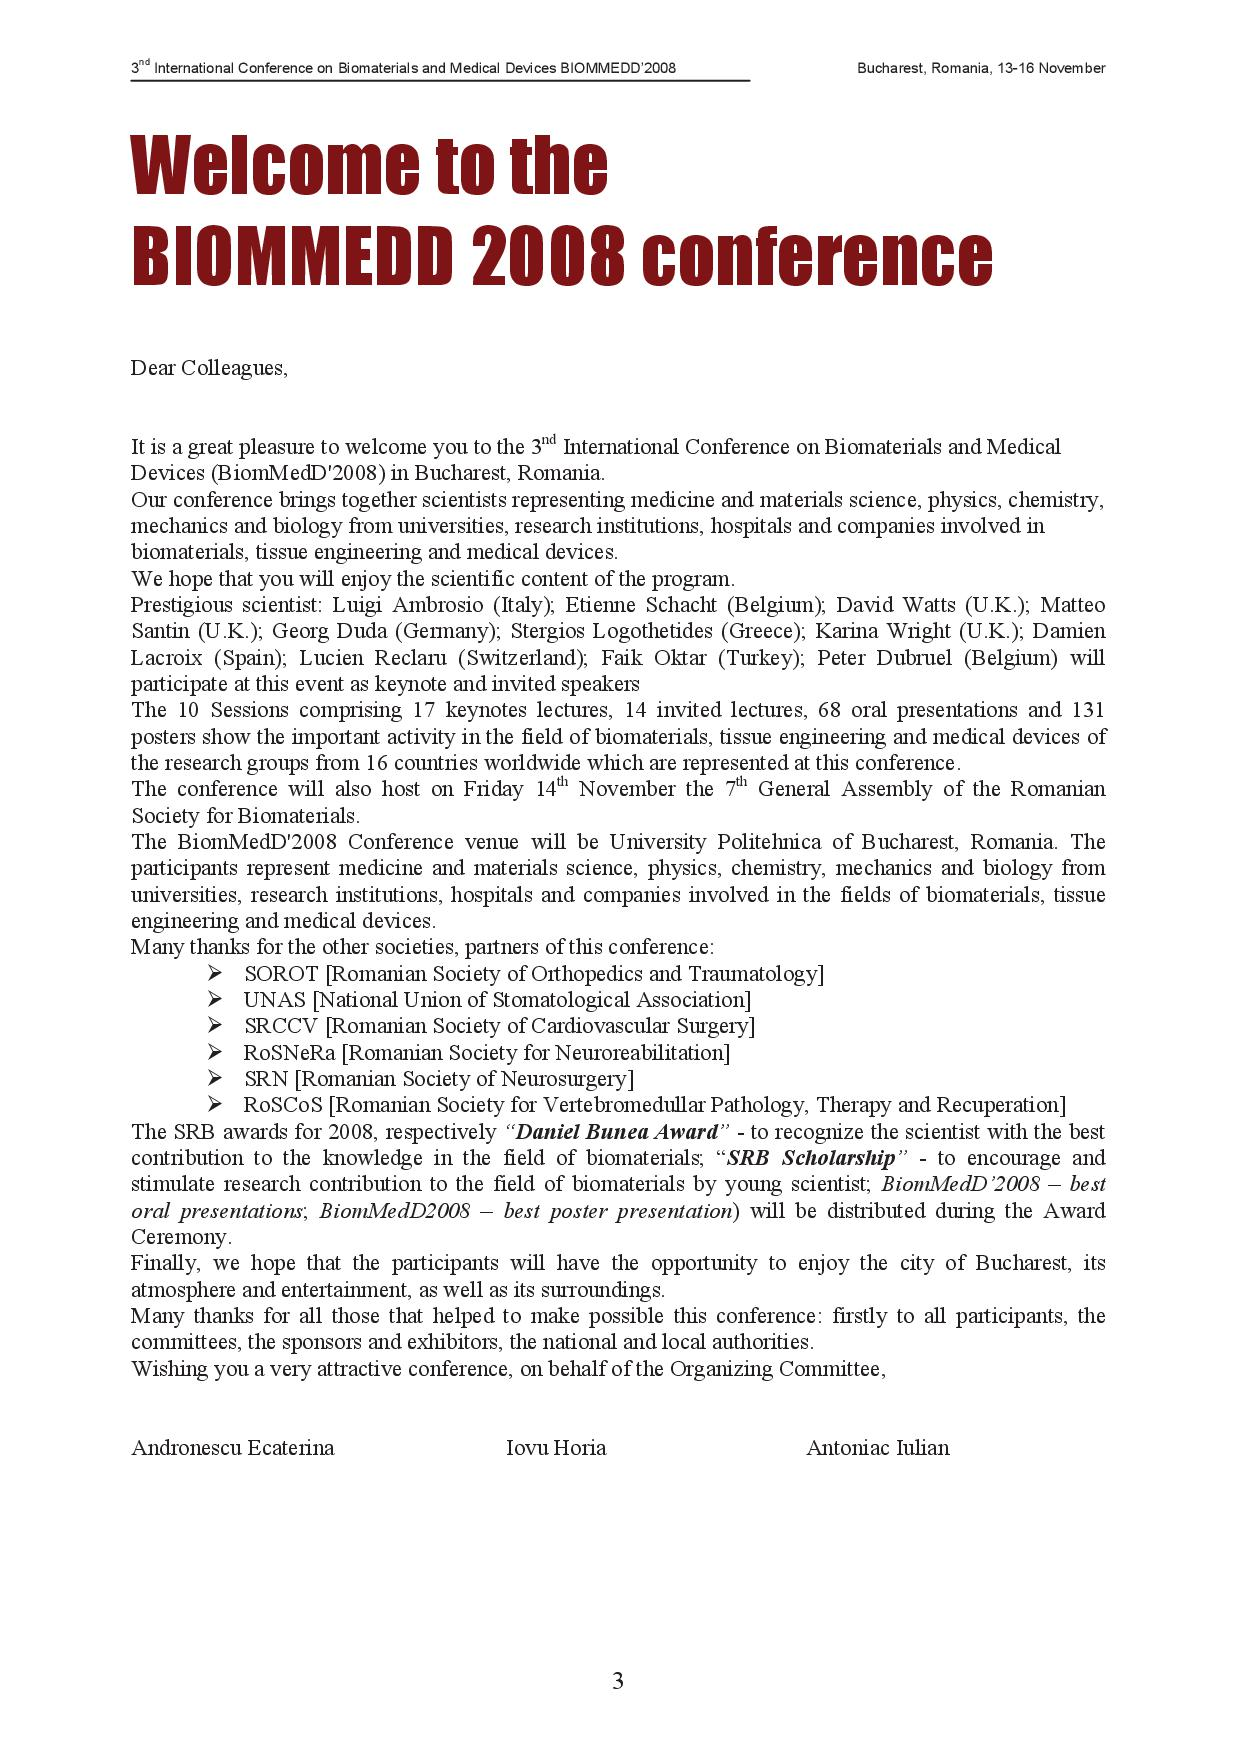 3rd International Conference on Biomaterials and Medical Devices BIOMMEDD'2008